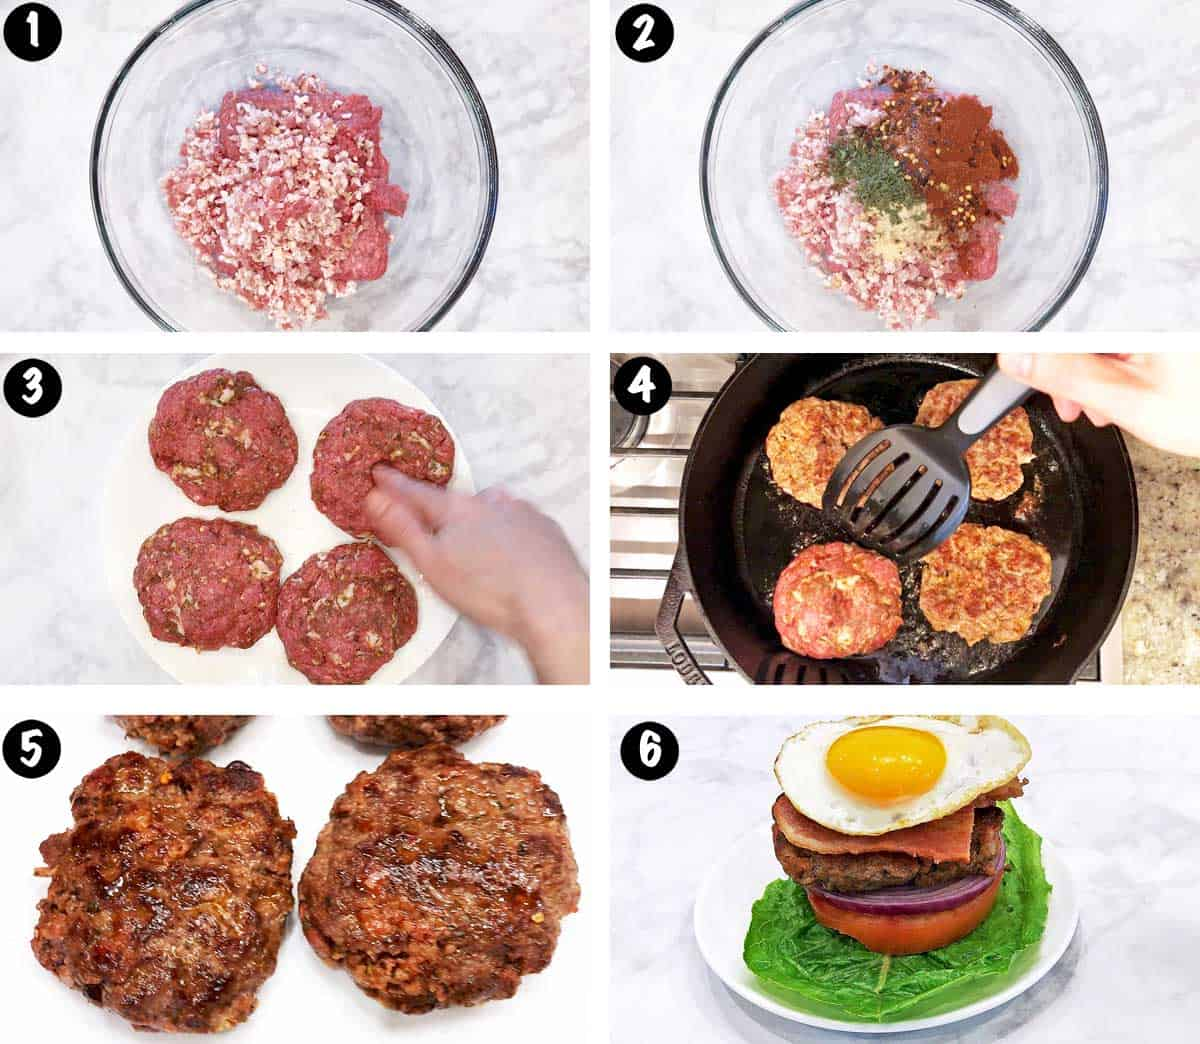 A photo collage showing the steps for making bacon burgers.